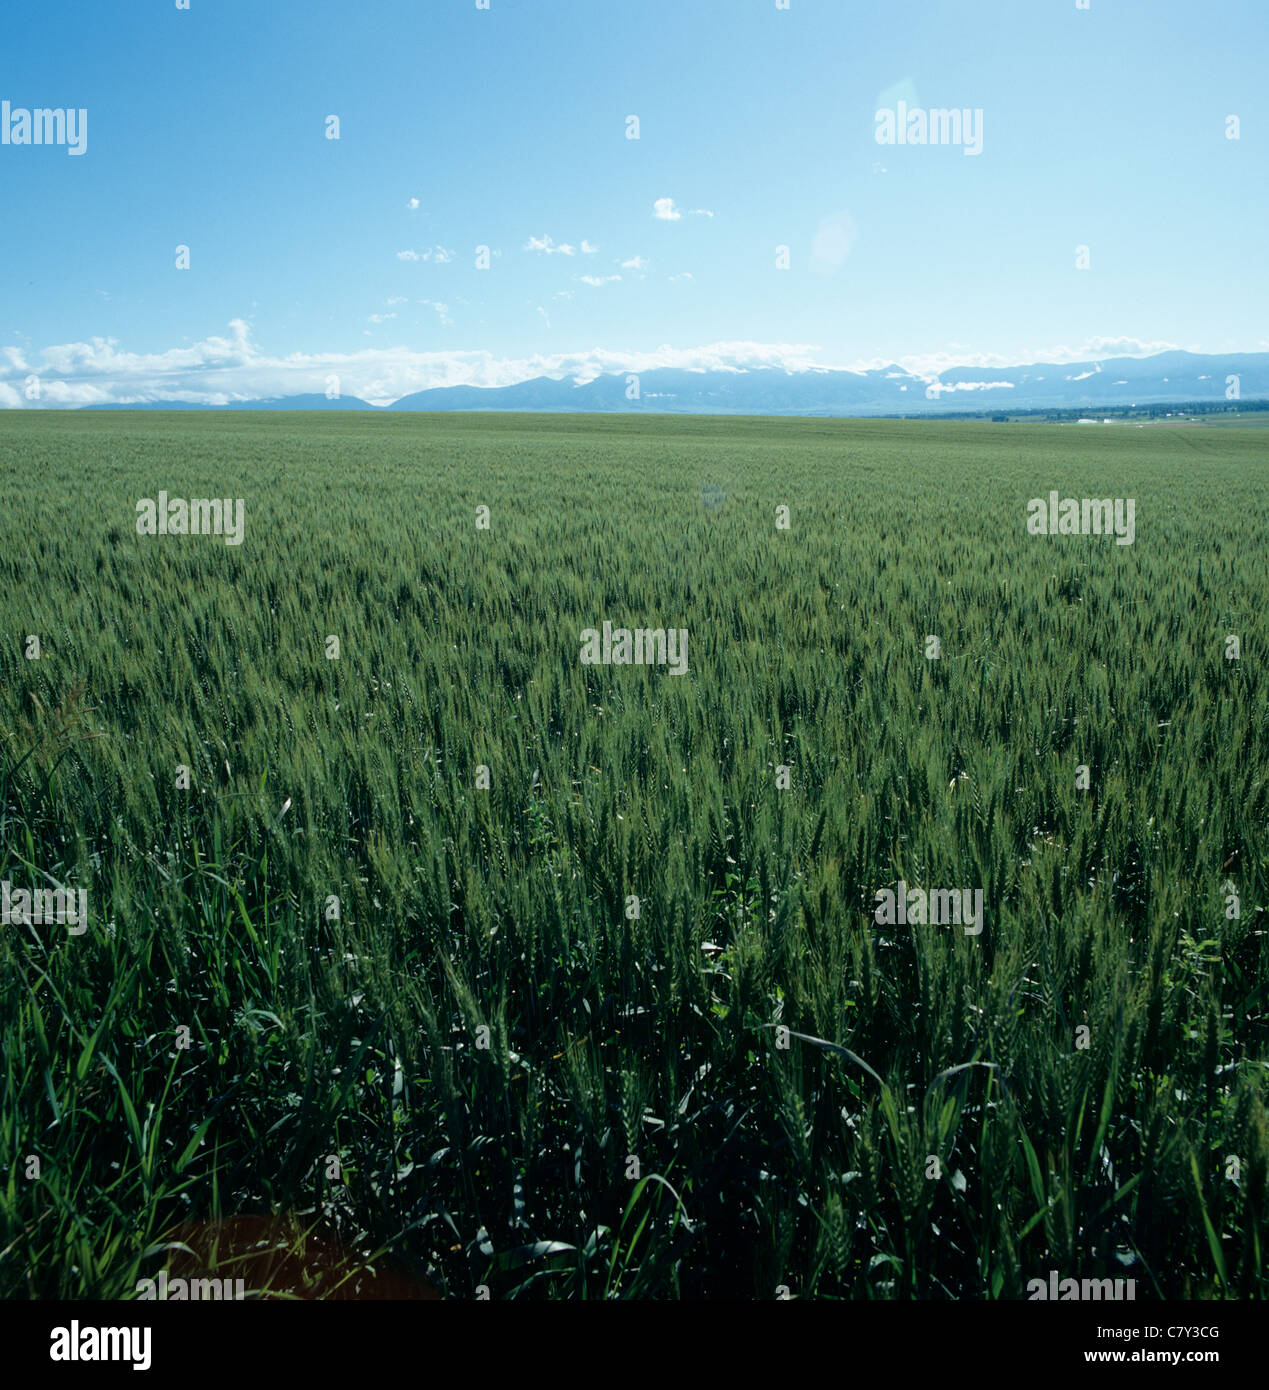 Bearded wheat crop in unripe green ear lit by late afternoon sunshine Montana, USA - Stock Image